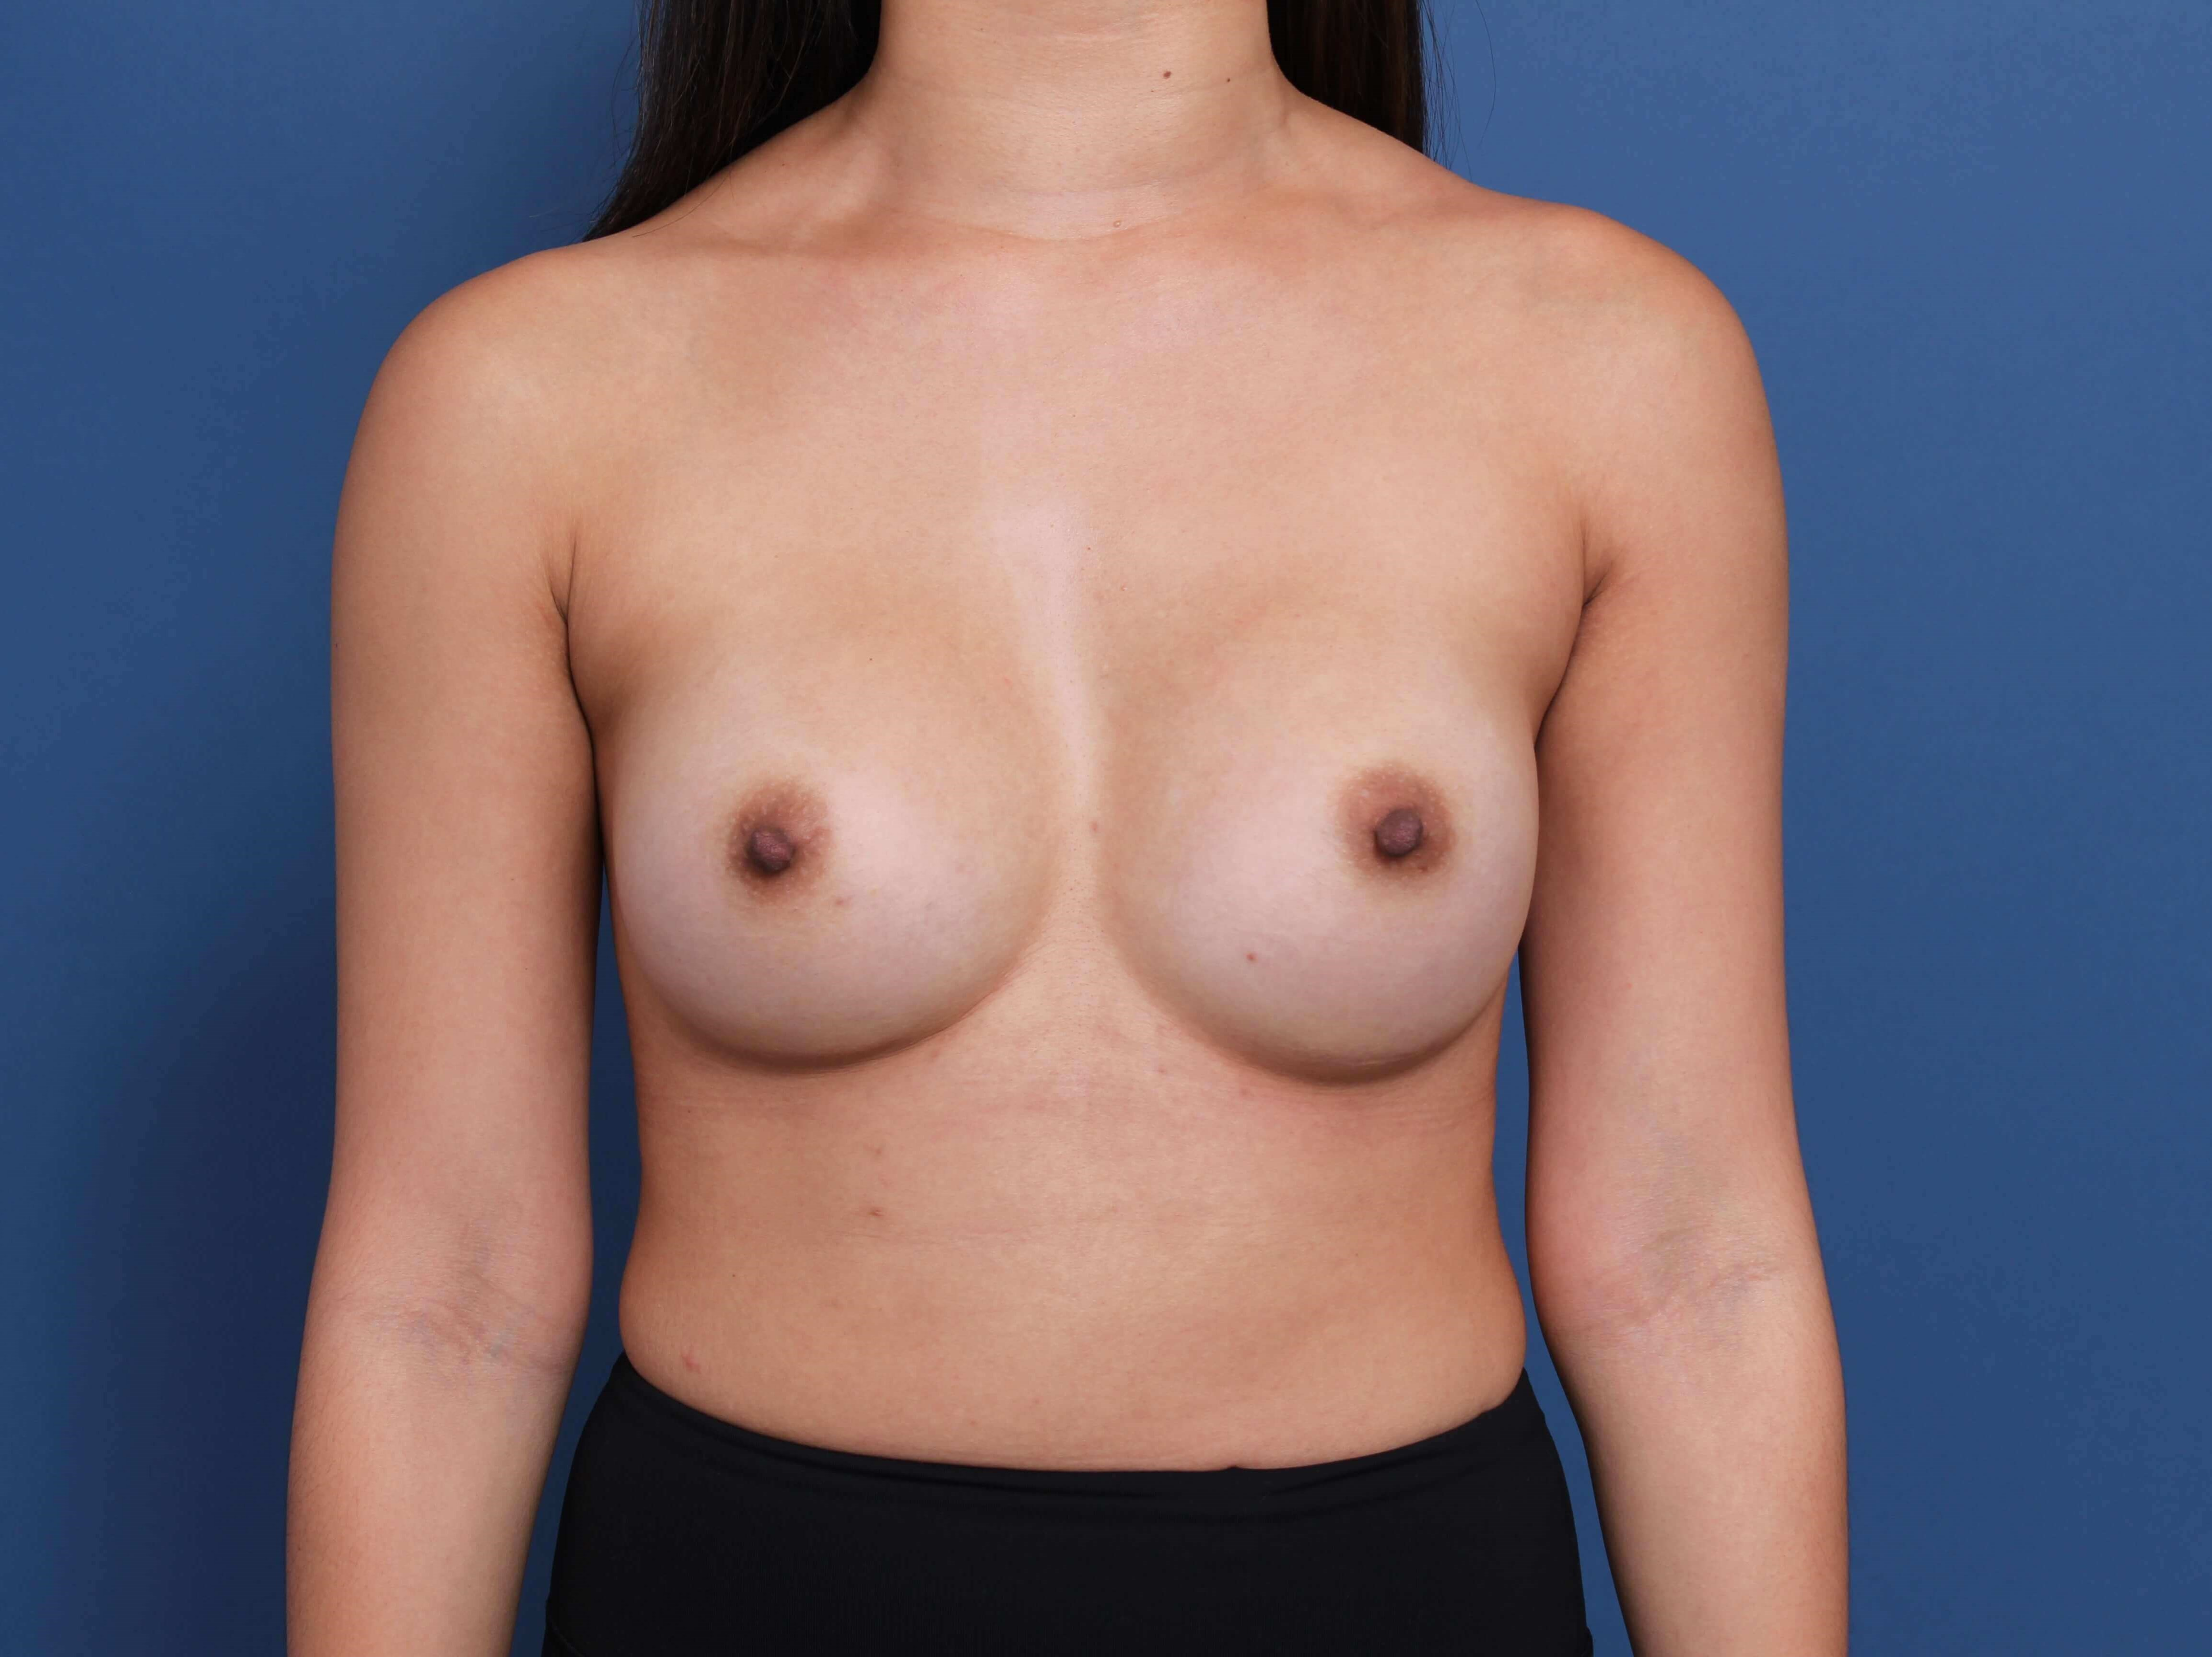 High Profile Breast Implants After